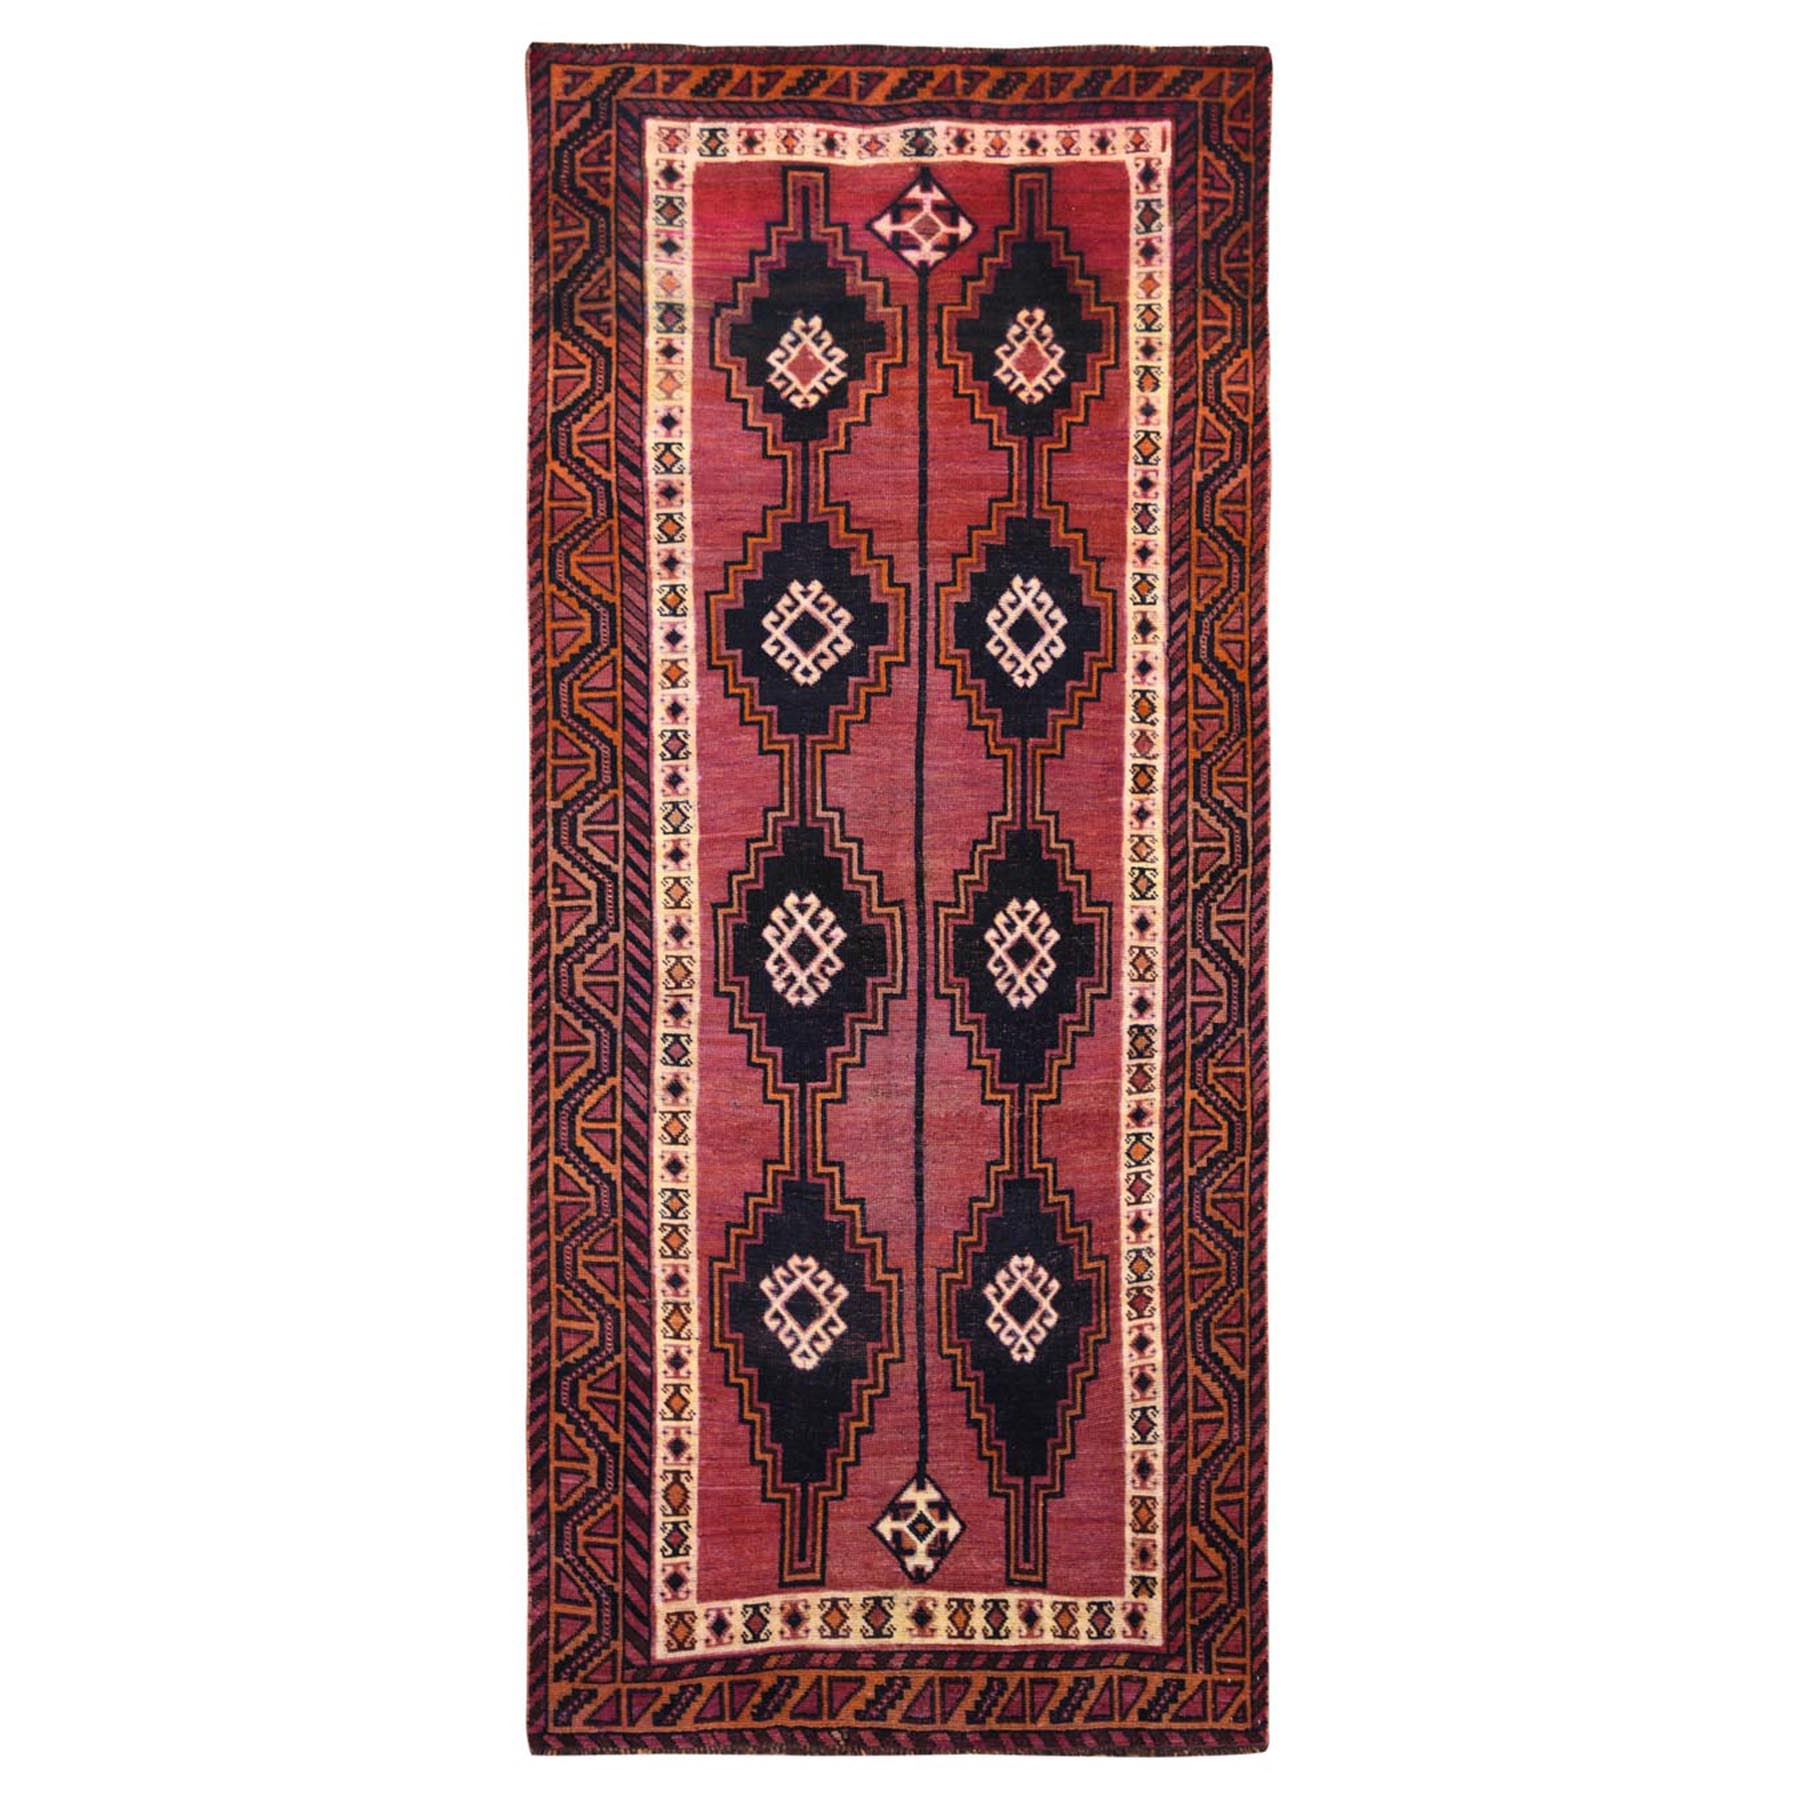 "4'9""x10'5"" Hand Knotted Red Persian Qashqai Worn Down Vintage Bohemian Natural Wool Clean Runner Oriental Rug"